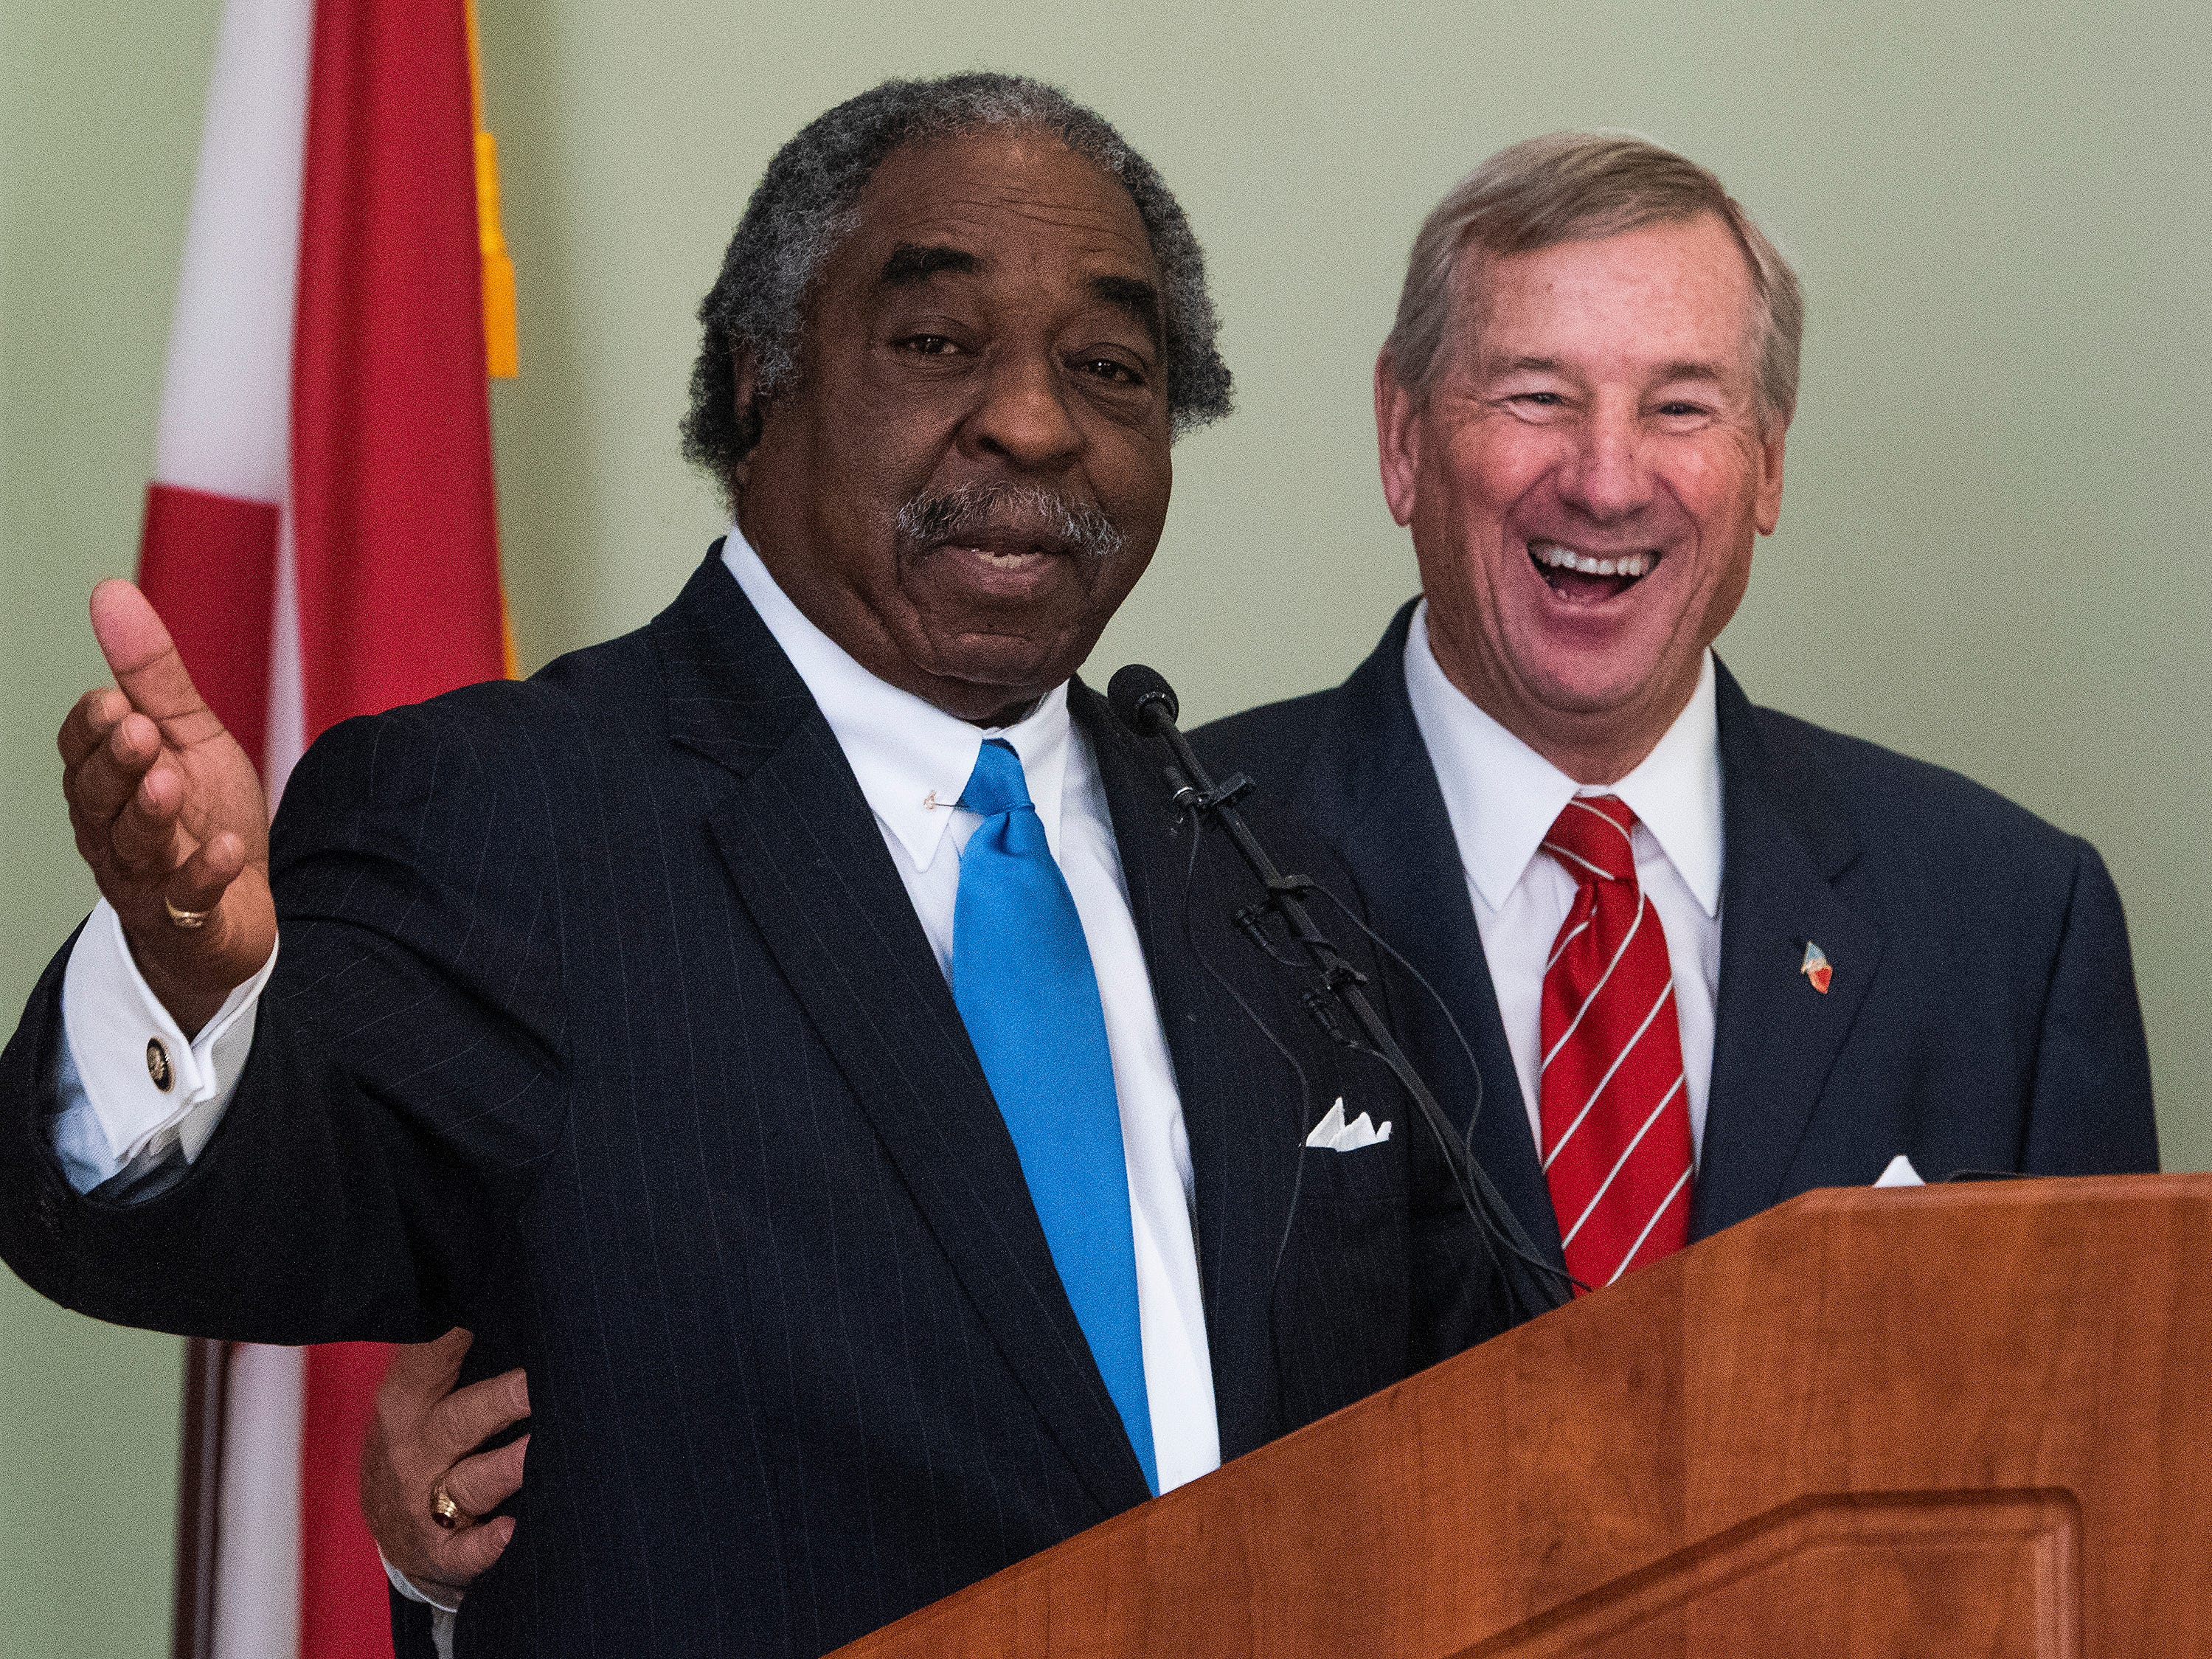 Charles Price and Mayor Todd Strange speak as the City of Montgomery and the Alabama Department of Archives and History unveiled, during a ceremony at the Archives on Monday December 3, 2018, the 1969 time capsule that will be opened on the 200th anniversary of the incorporation of Montgomery on December 3, 2019.